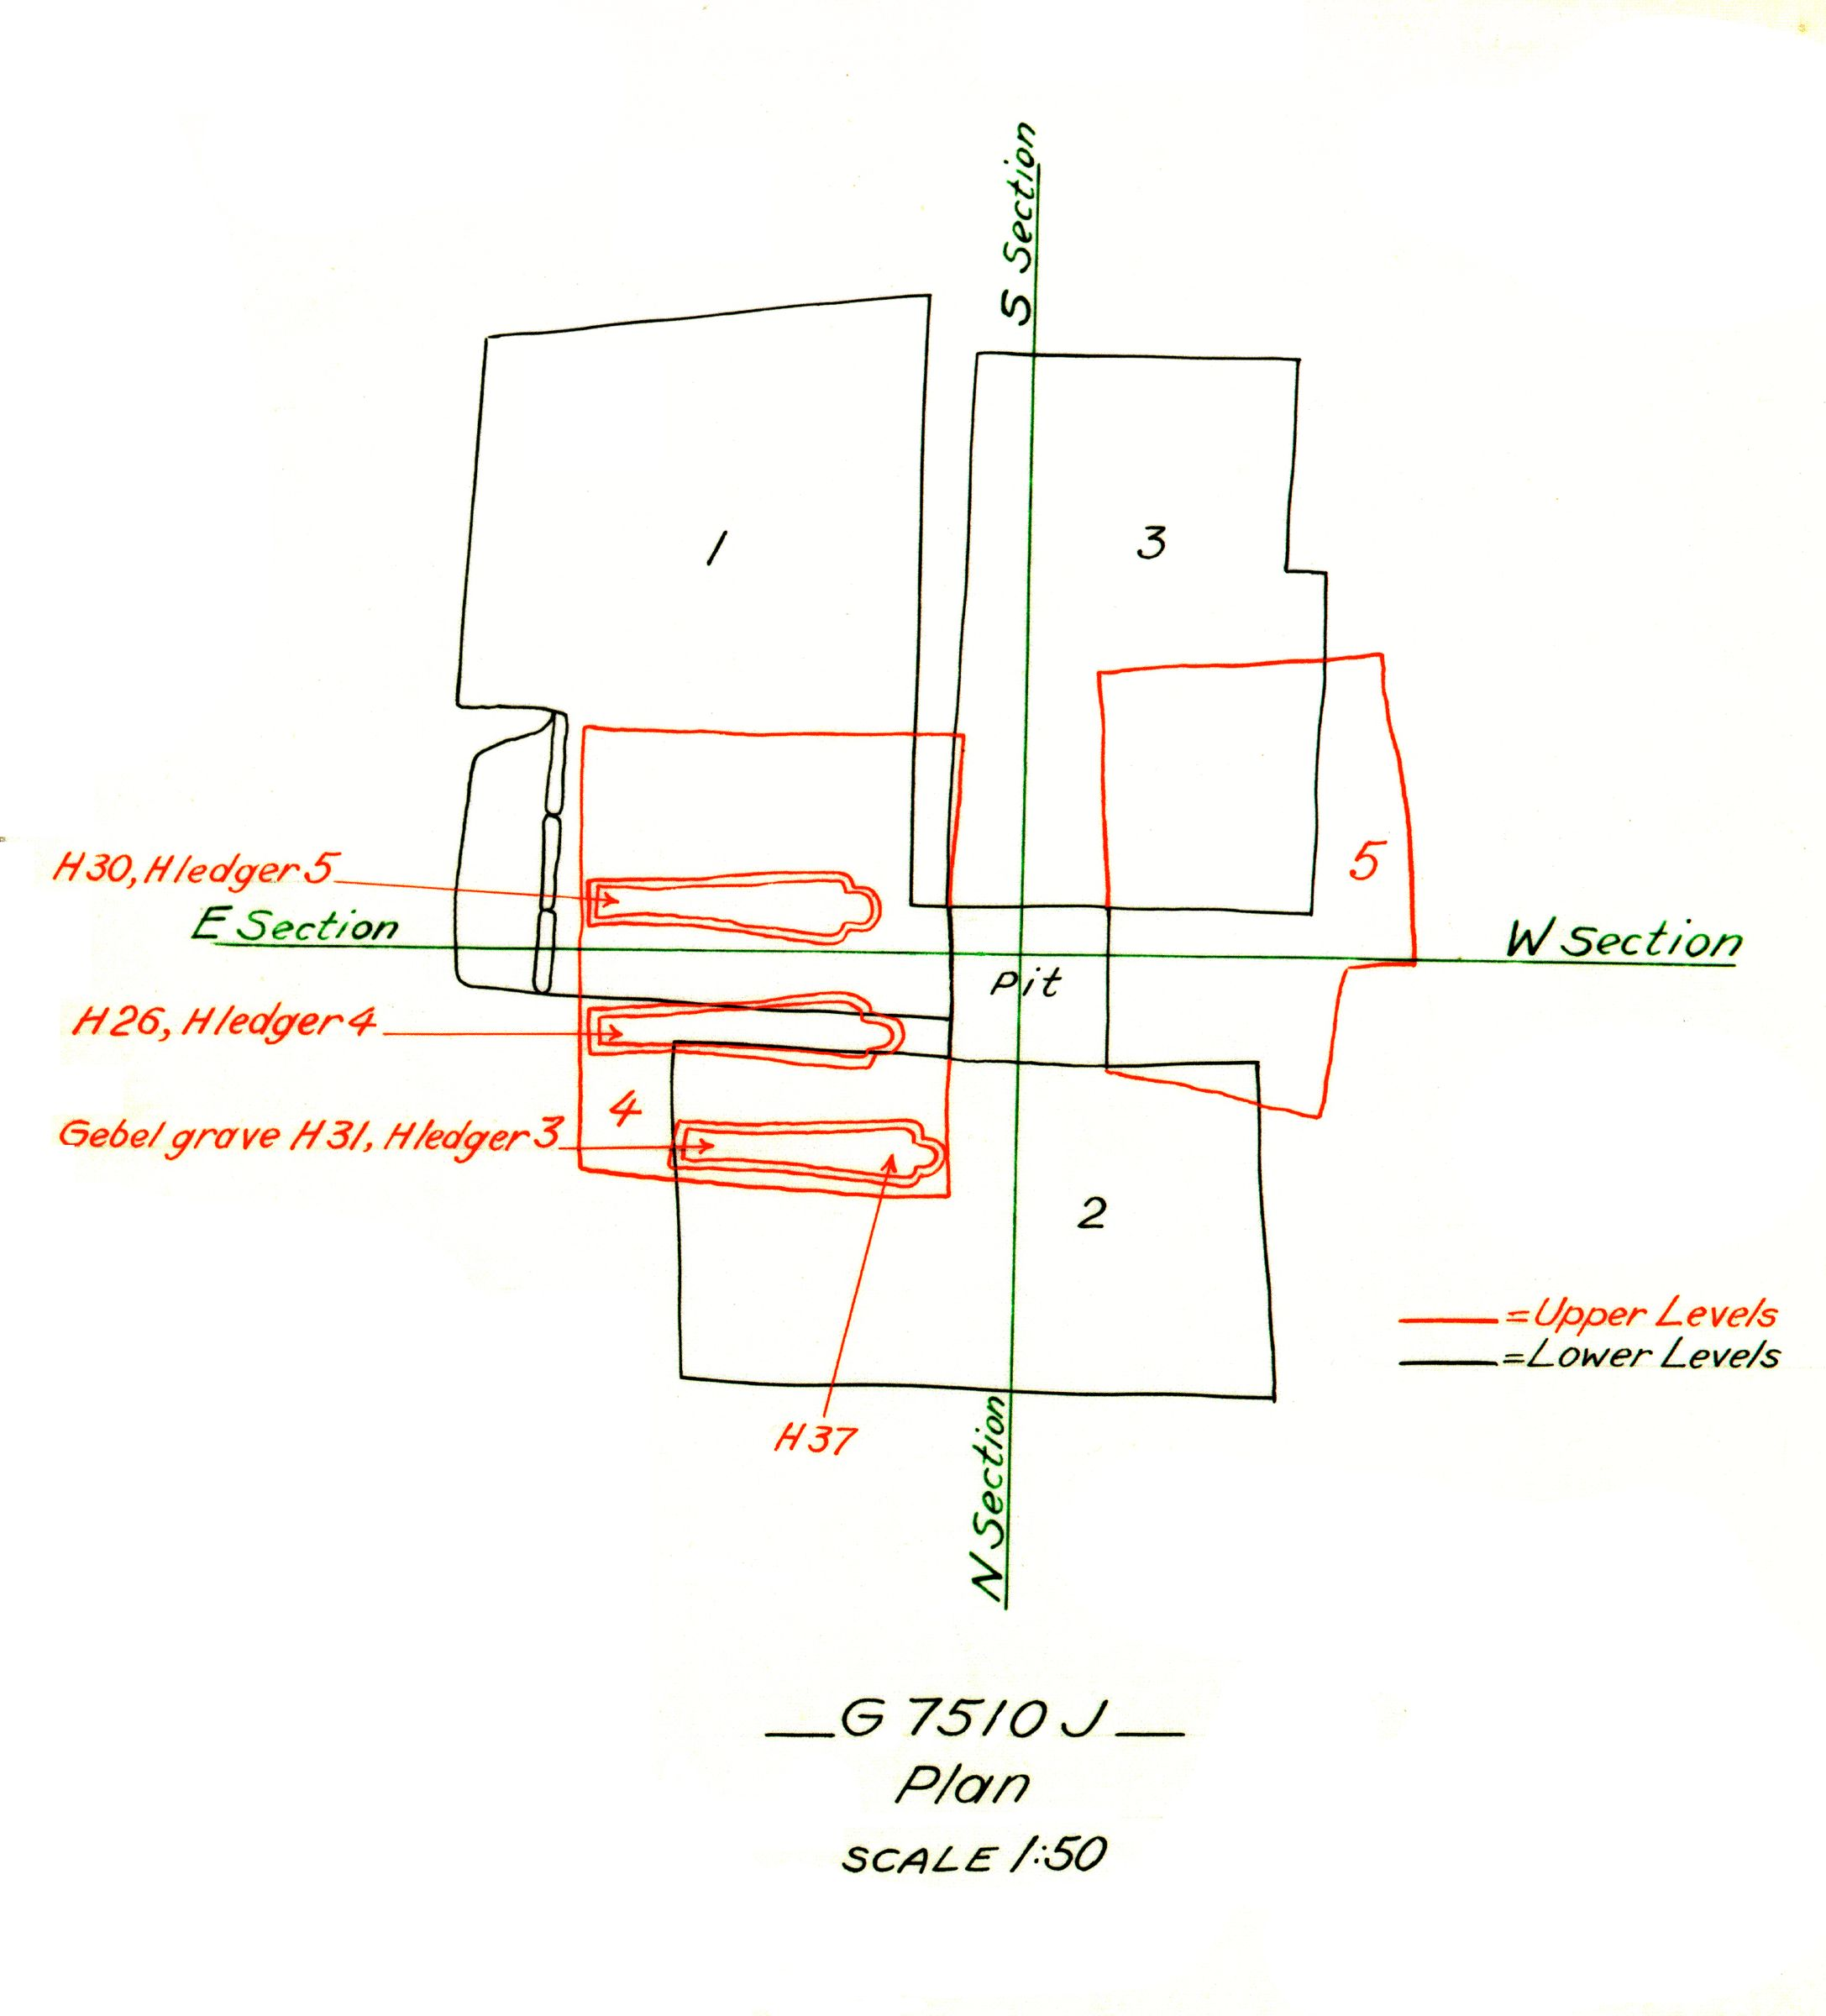 Maps and plans: G 7510, Shaft J